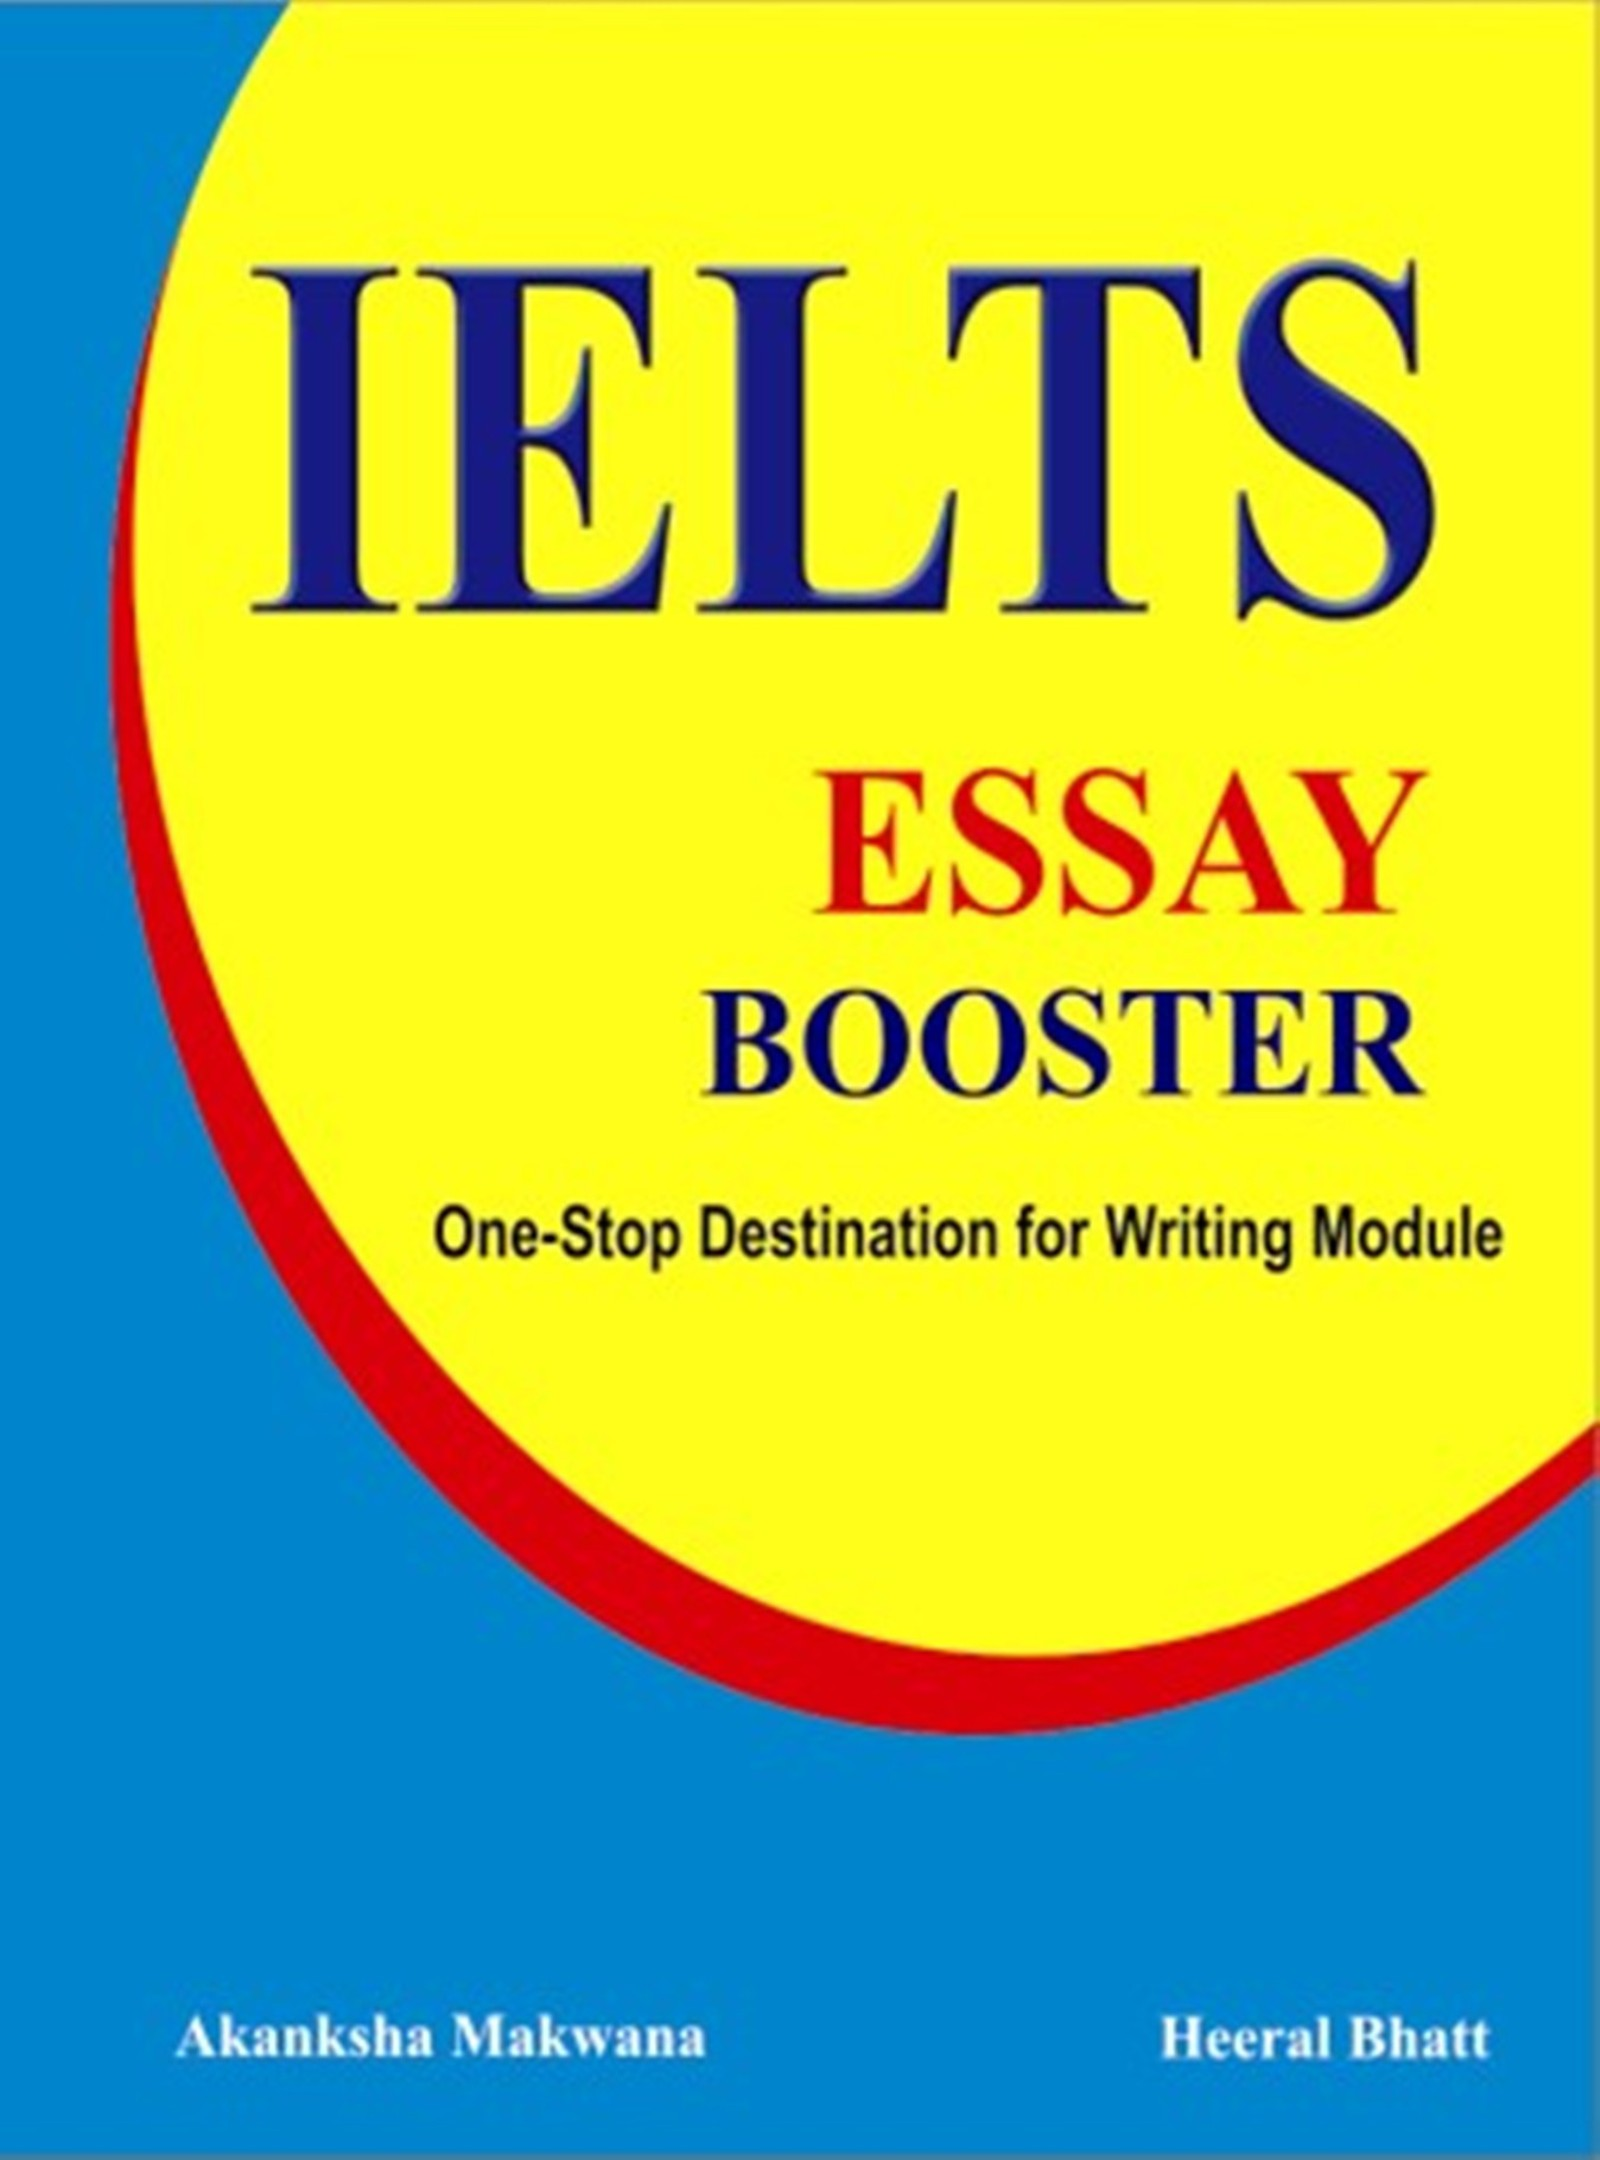 How to Write an IELTS Essay - IELTS Buddy